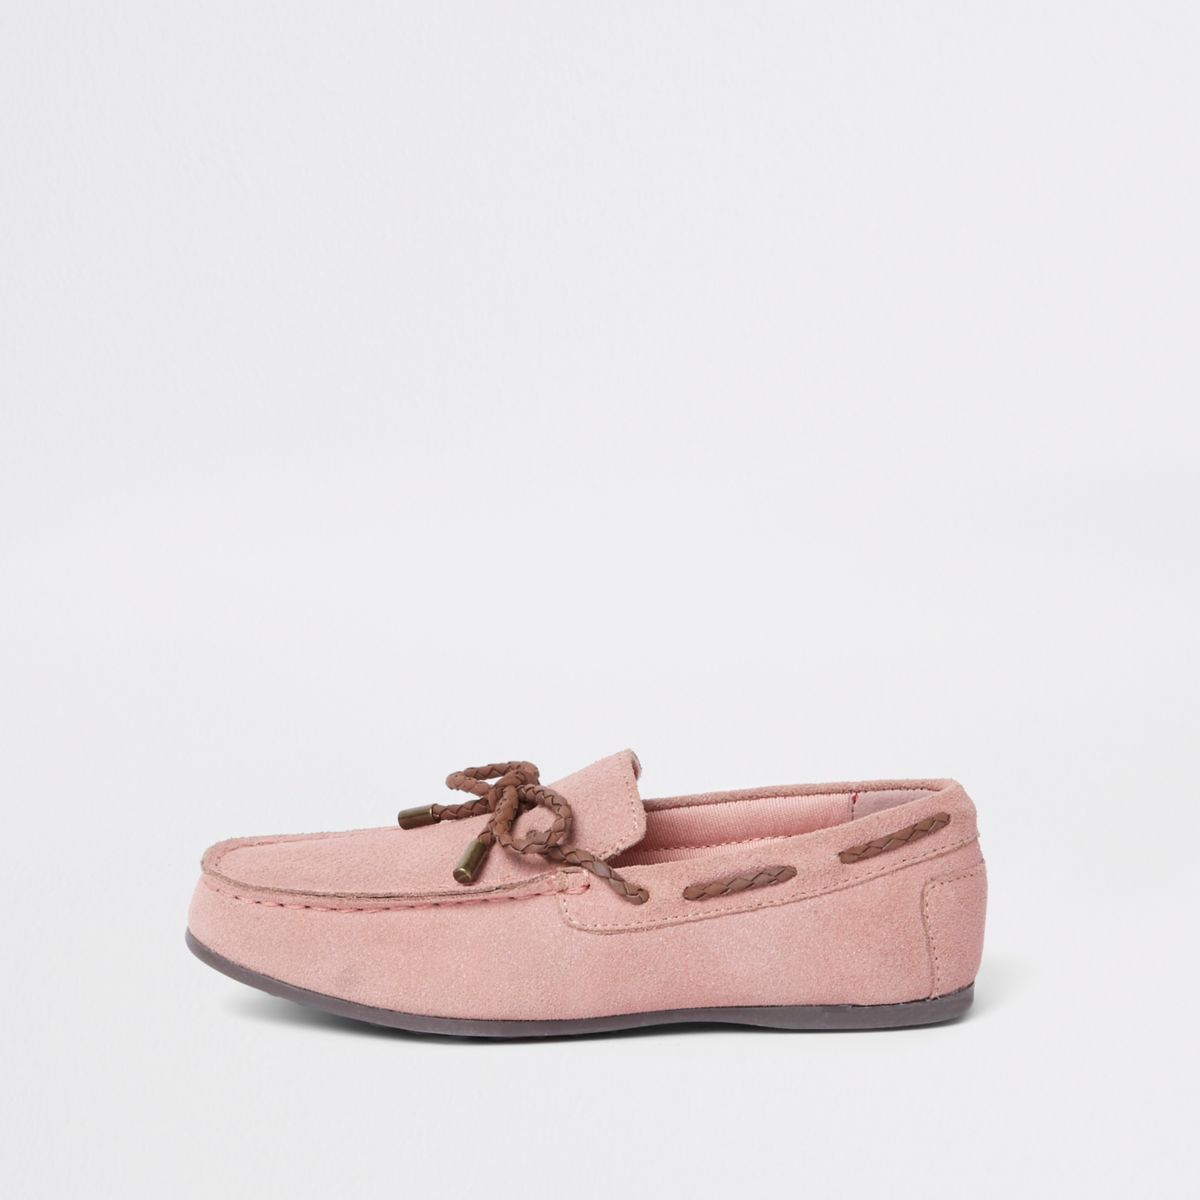 Boys pink suede driver shoes